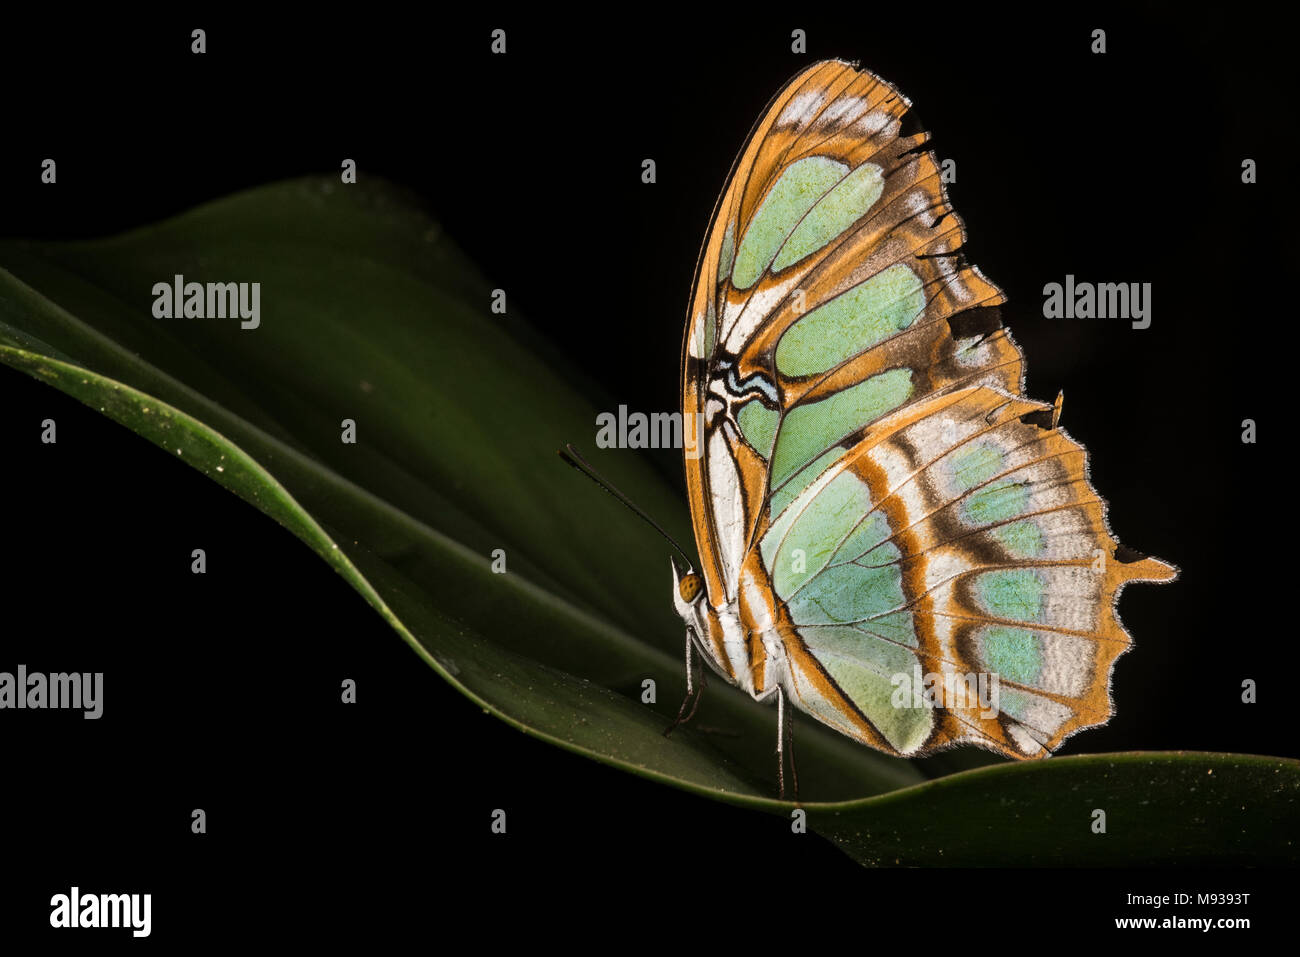 A malachite butterfly (Siproeta stelenes) a brush-footed butterfly (family Nymphalidae). Named after the mineral malachite for its green color. - Stock Image